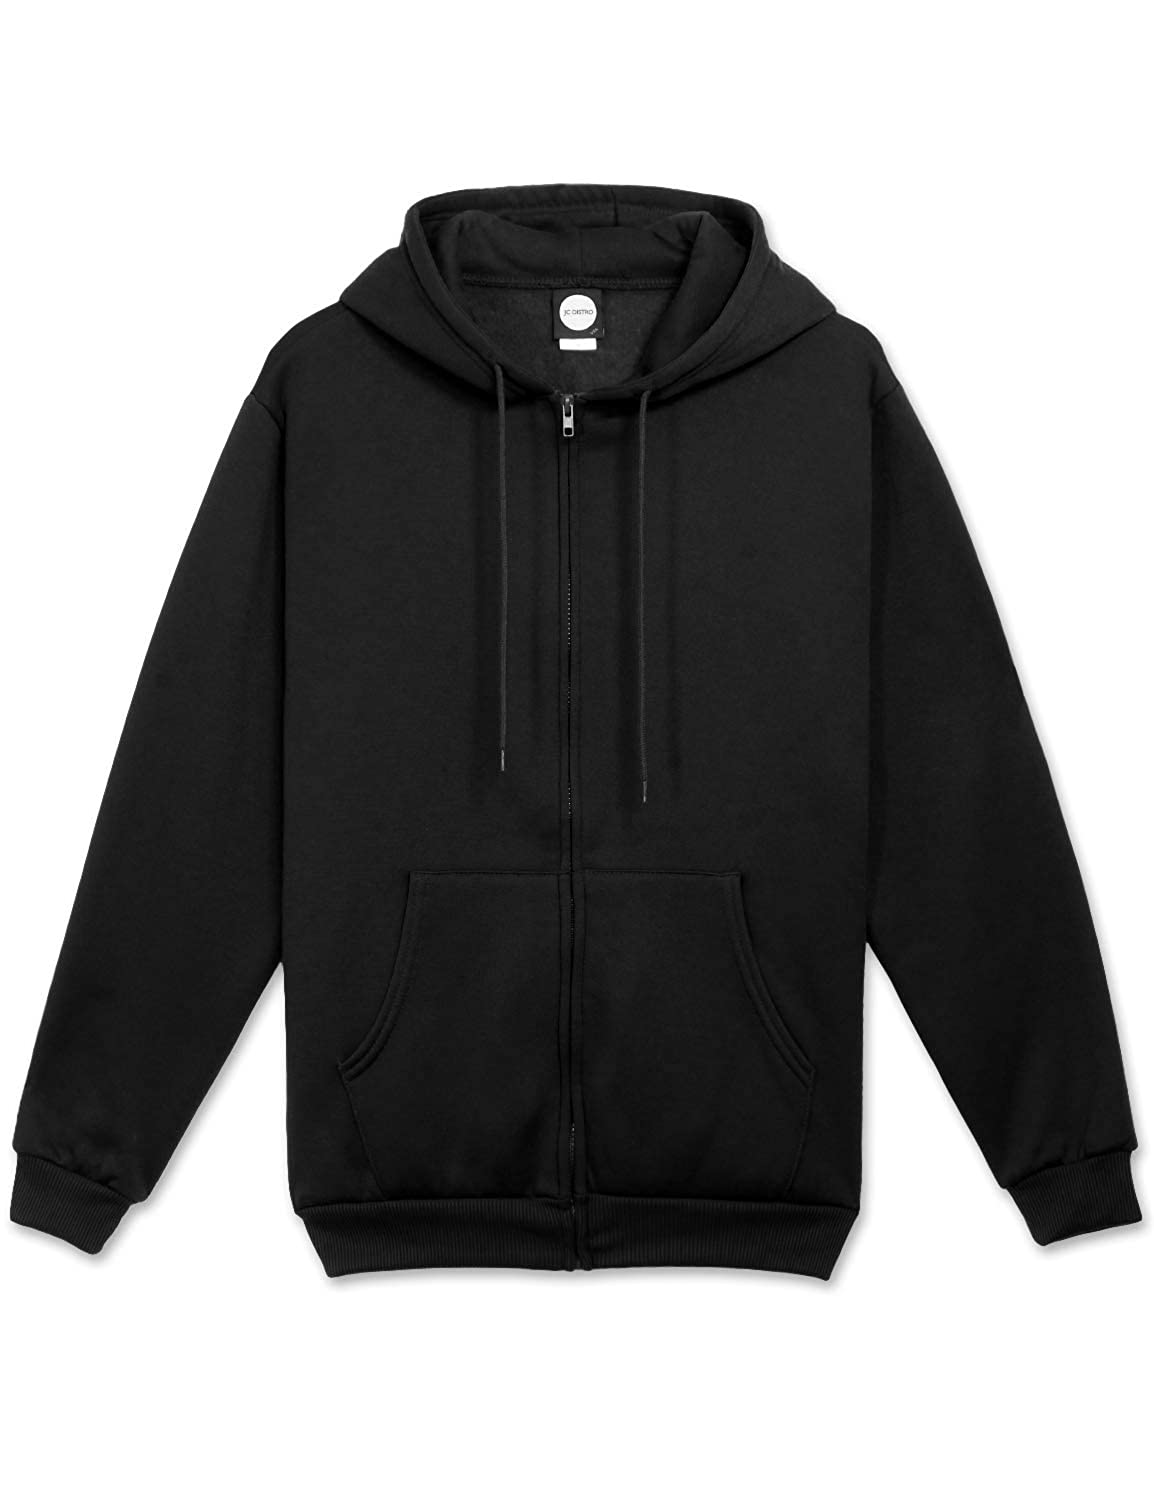 JC DISTRO Mens Hipster Hip Hop Basic Unisex Zip-Up Hoodie Jacket (Size Upto 5XL Big Size)